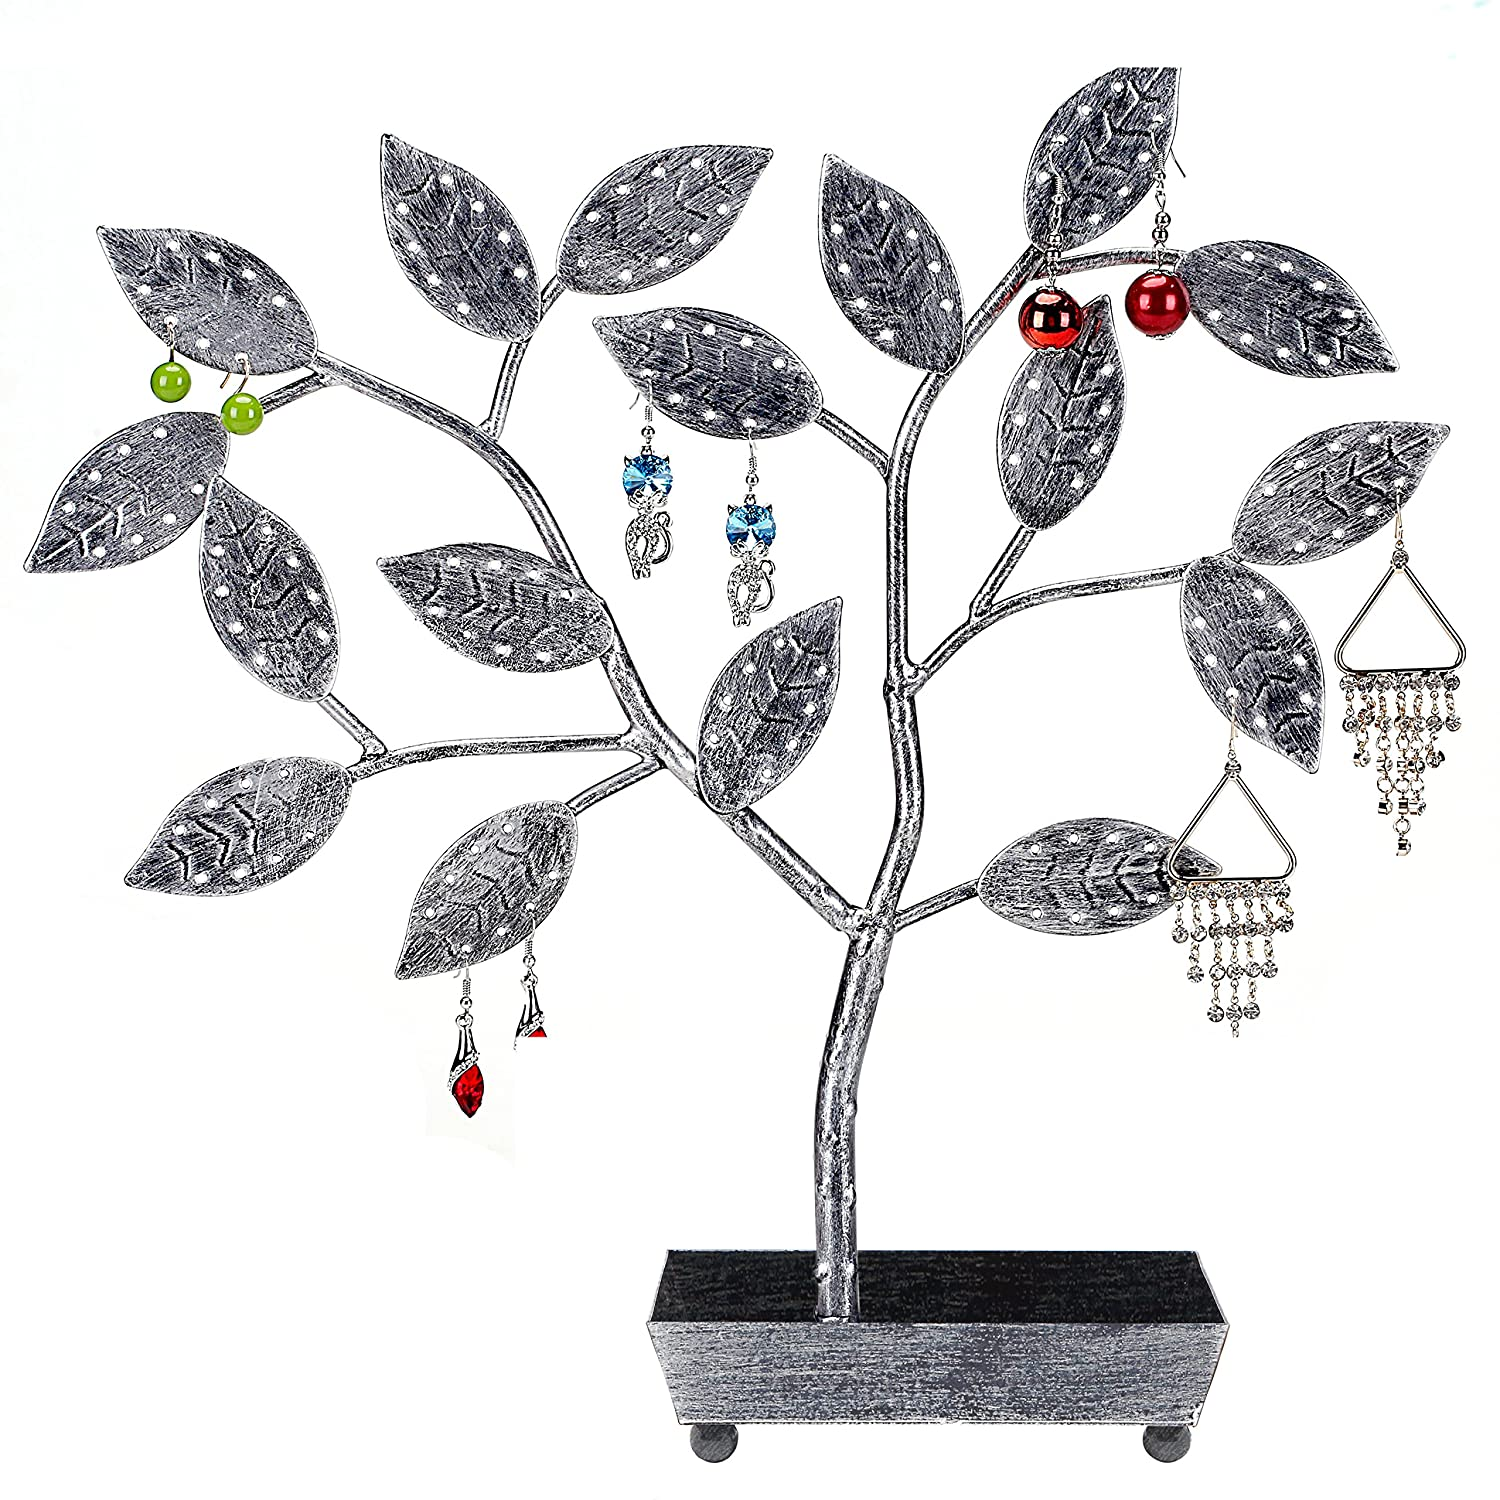 MyGift Jewelry Tree, Earring Necklace Hanger Holder with Ring Dish Tray, Bronze TB-J0115BRZ